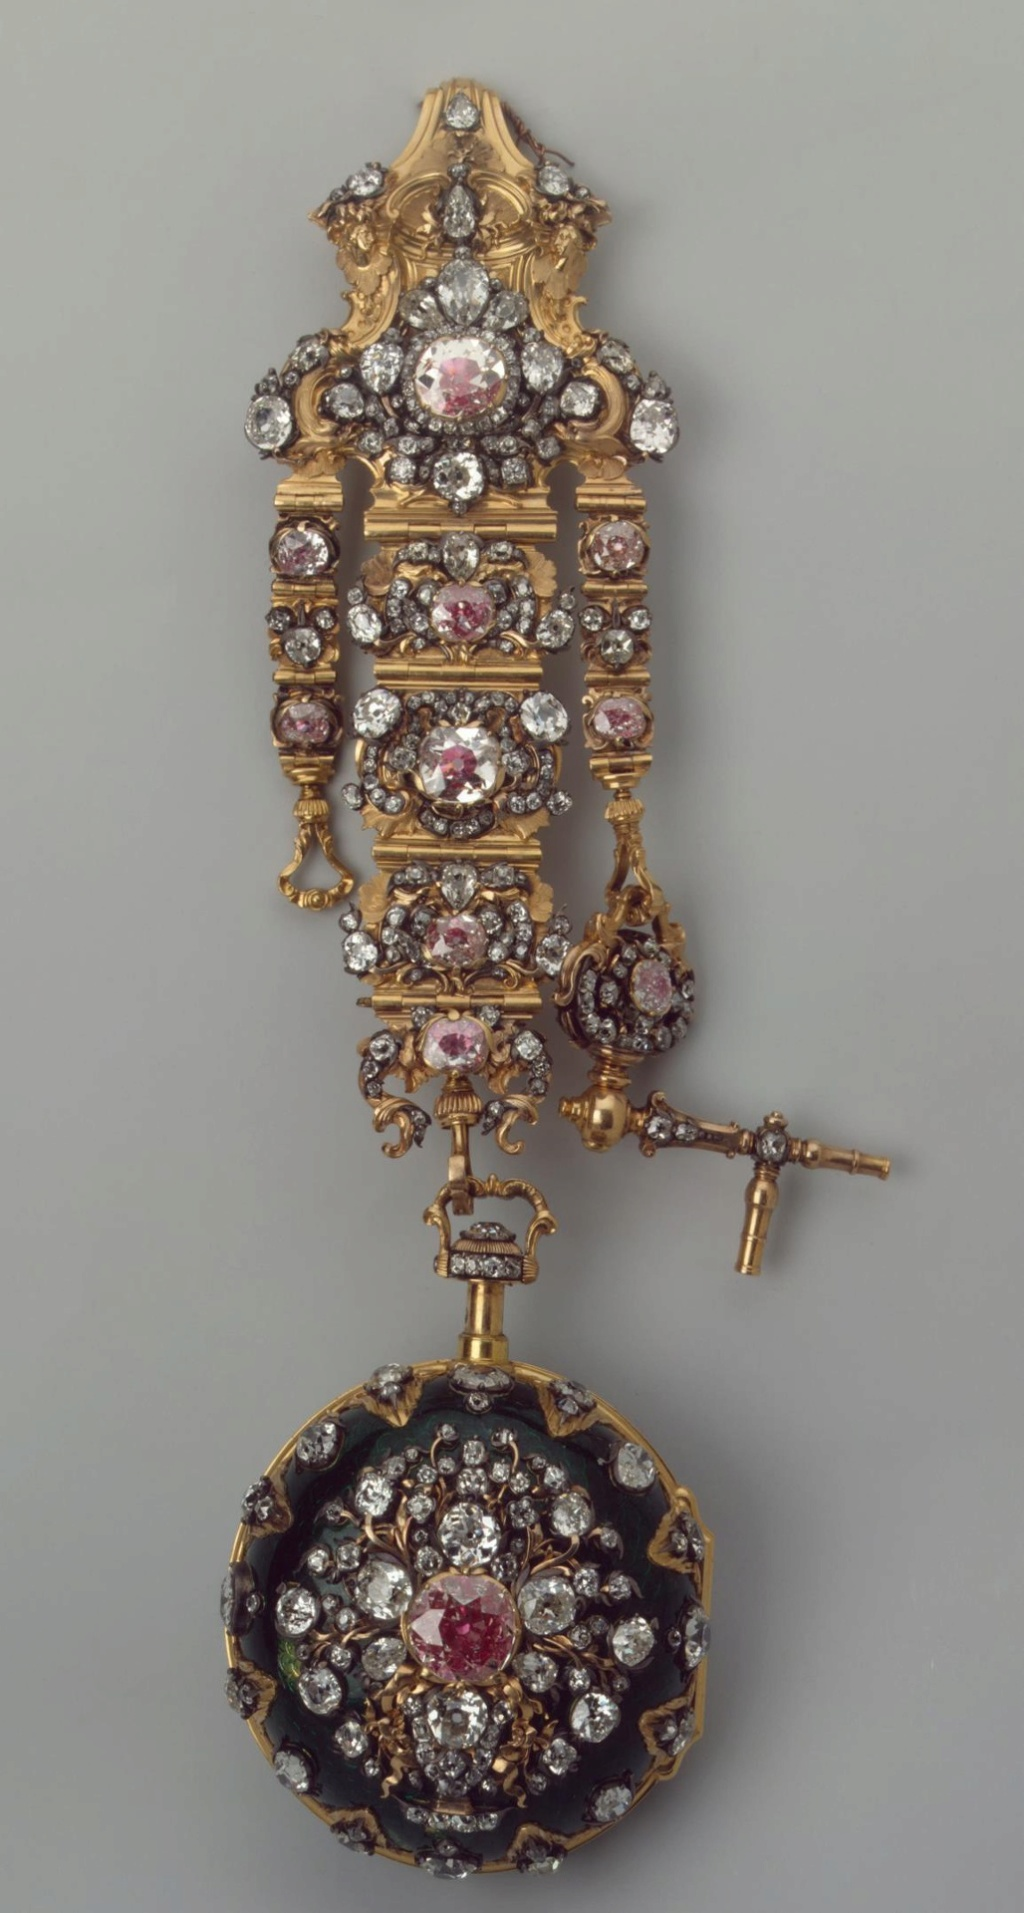 Exposition : Jewels ! Glittering at the Russian Court, Hermitage Amsterdam Woa_im82